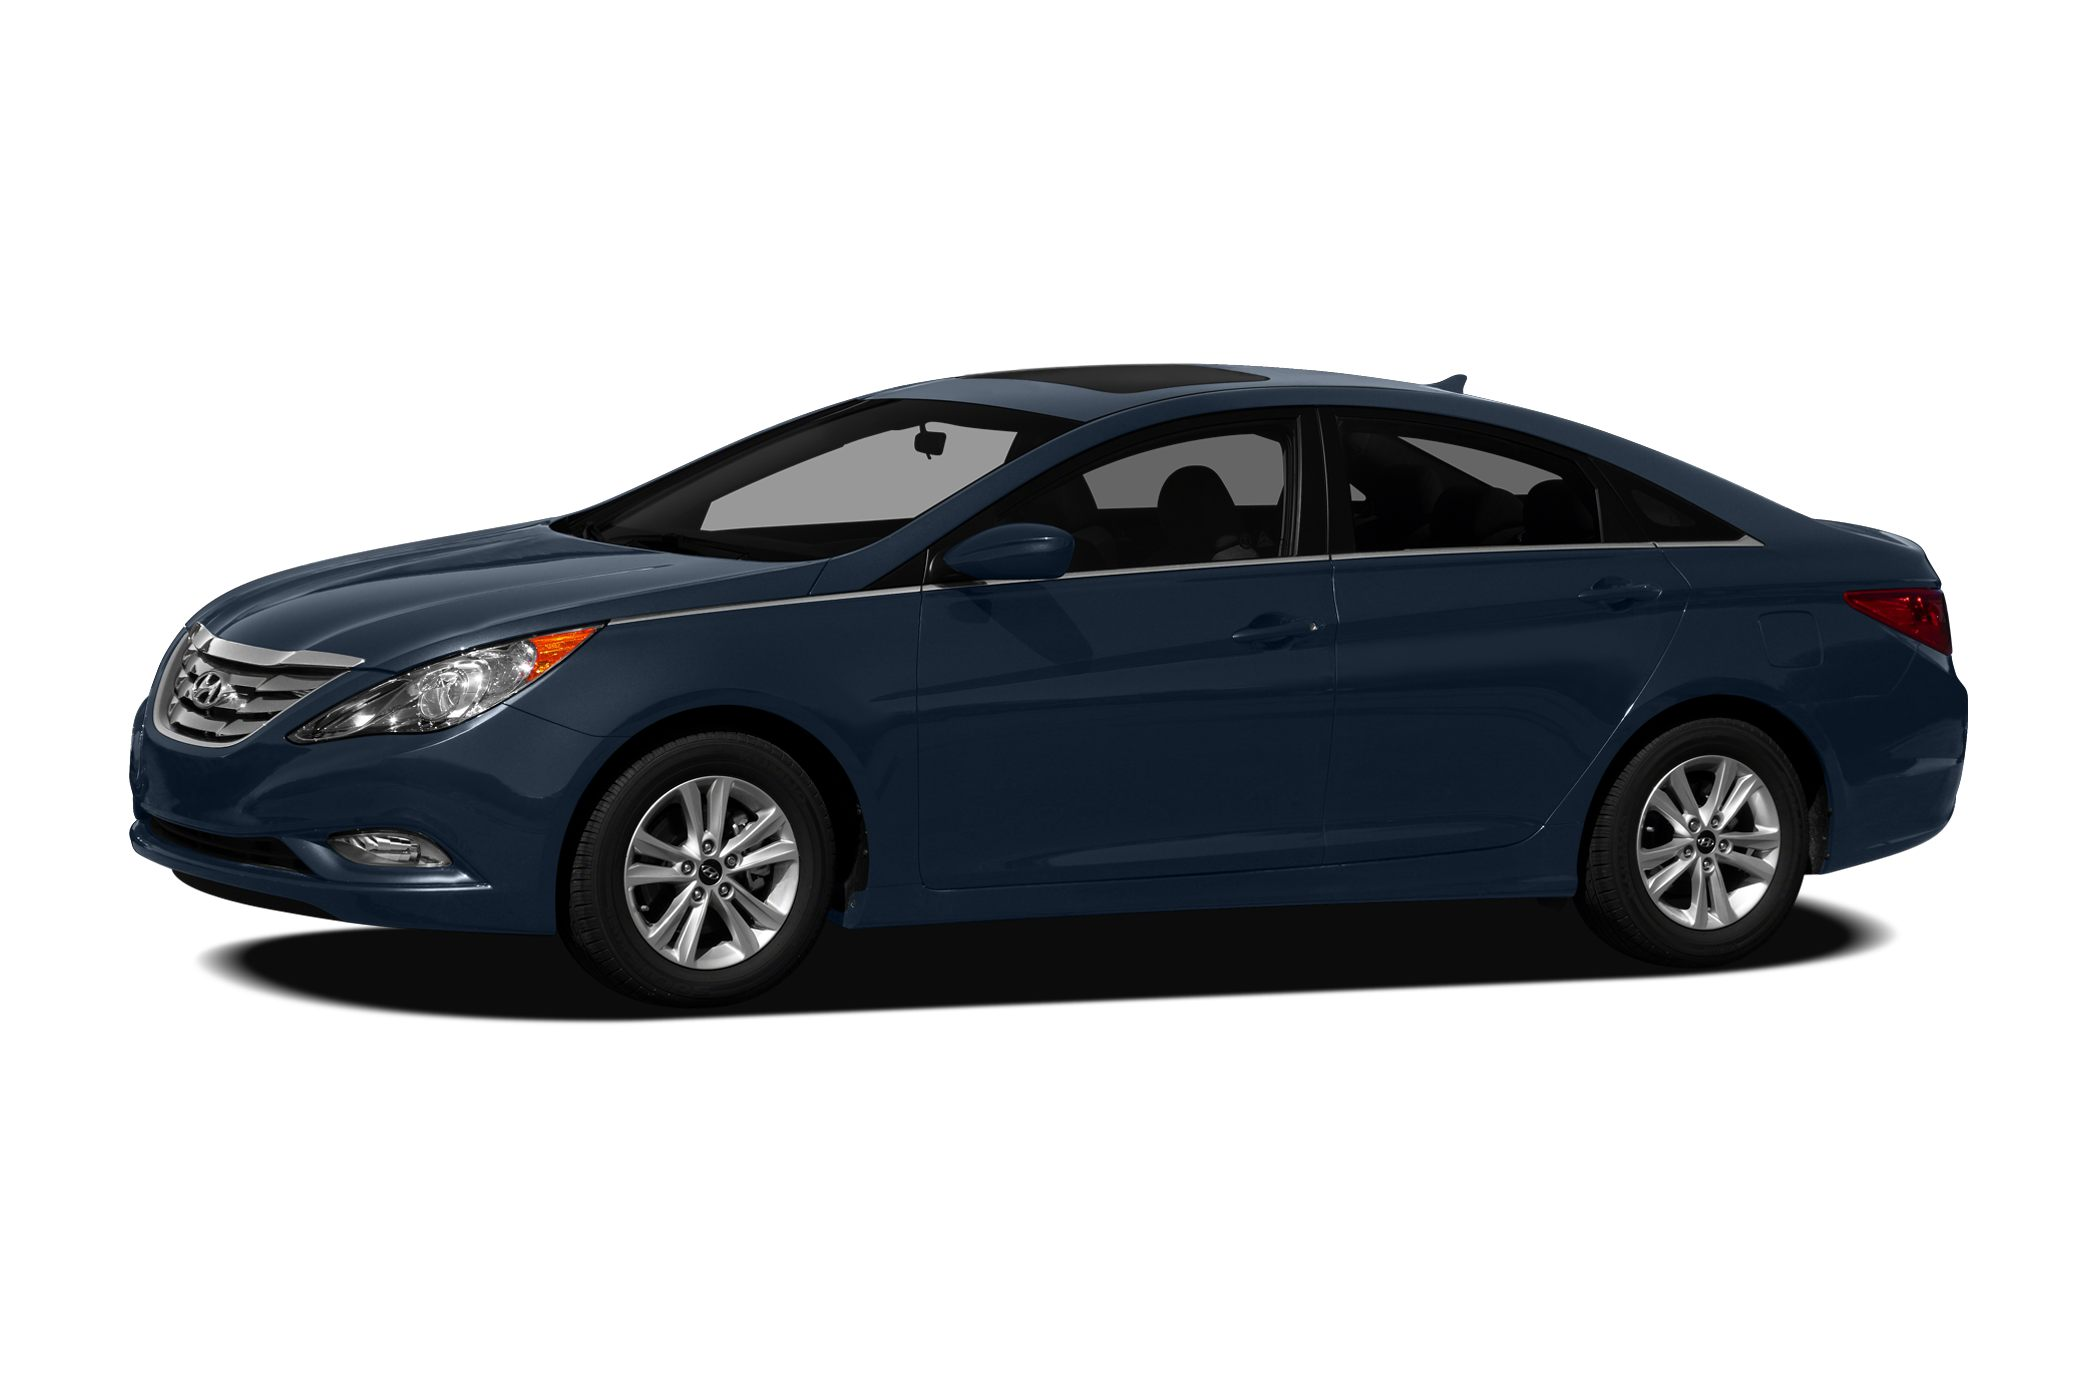 2012 Hyundai Sonata GLS Sedan for sale in Gaithersburg for $14,288 with 33,141 miles.